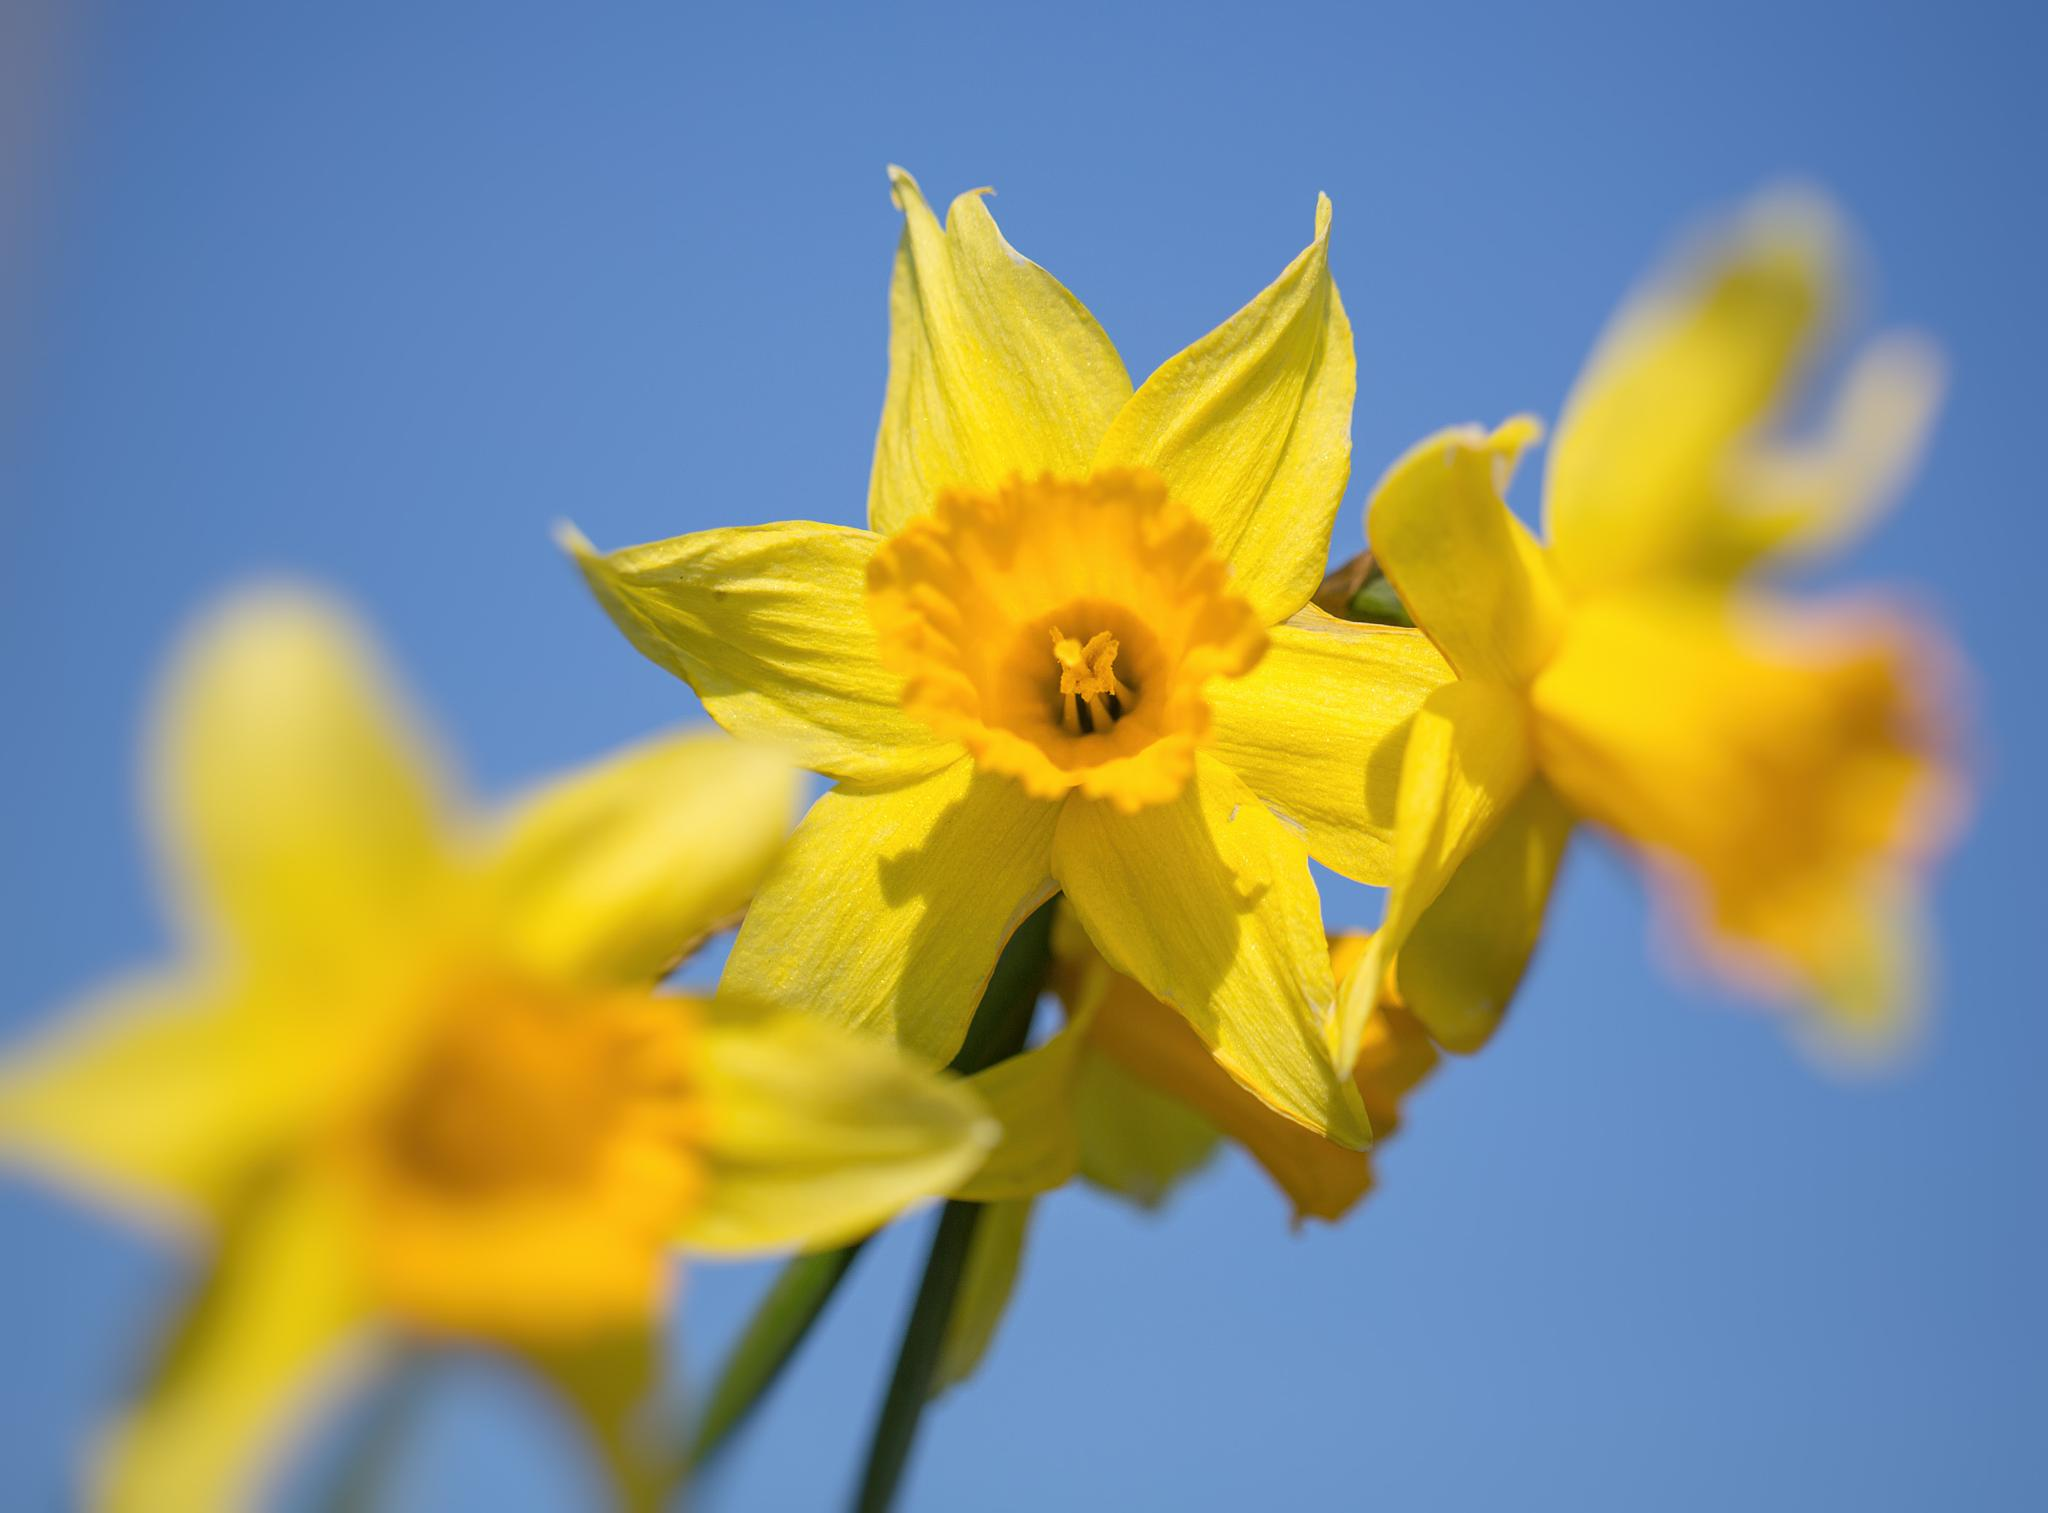 Cresswell Daffodils by MikeBlythe